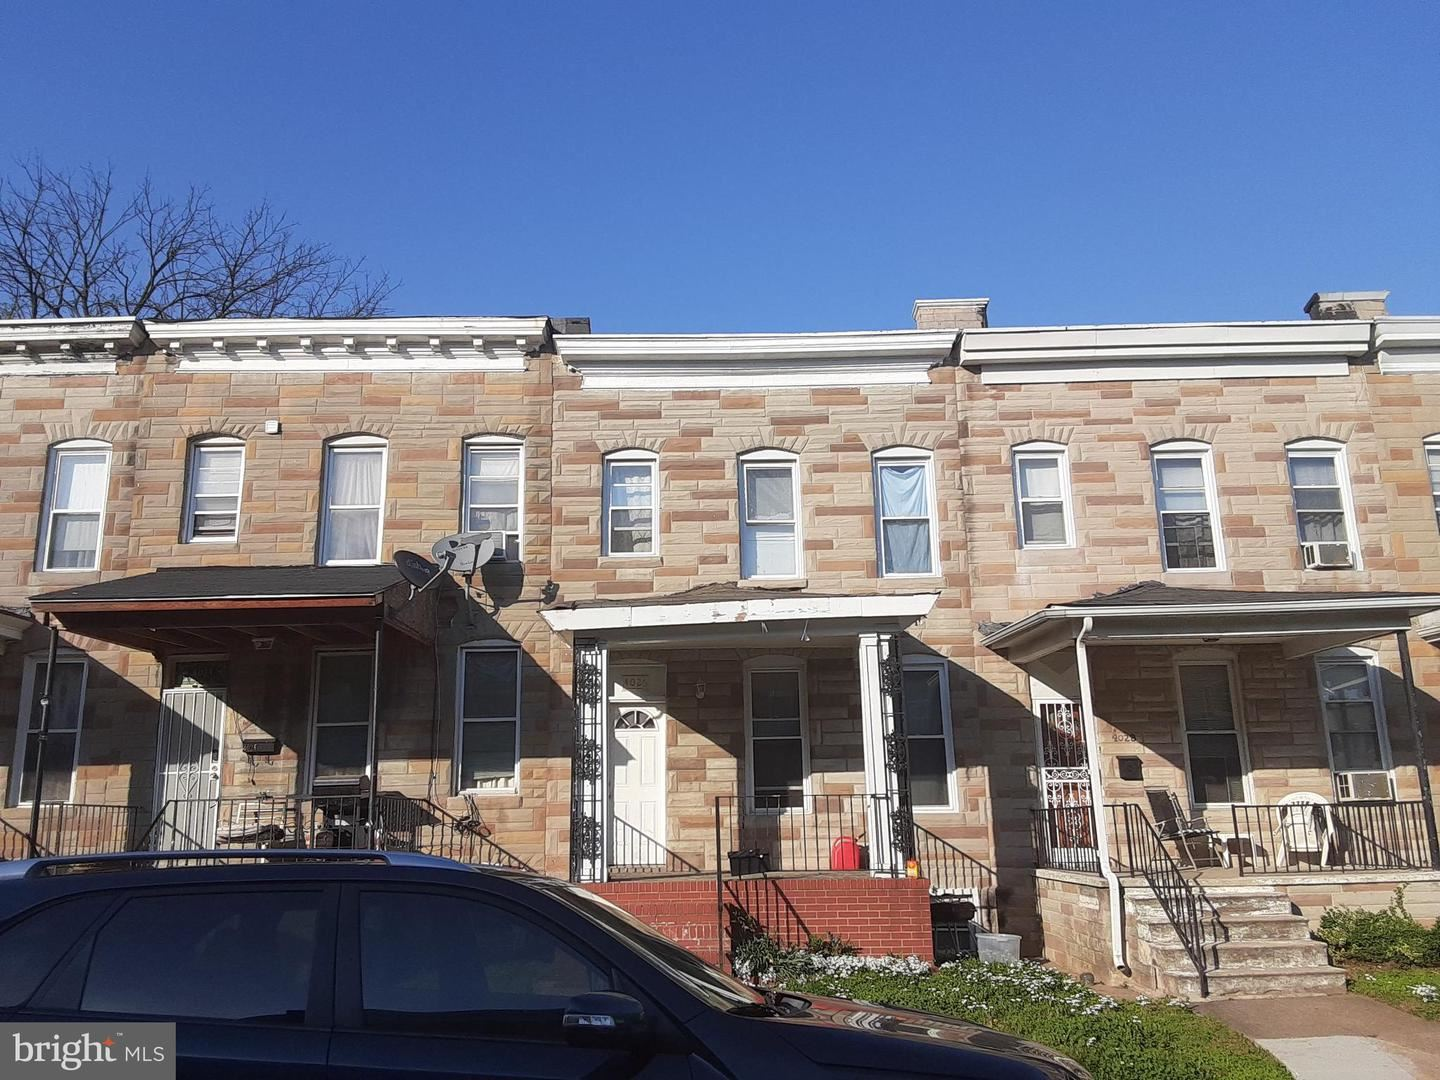 4026 BELWOOD AVE, Baltimore, MD 21206 - MLS#: MDBA548796